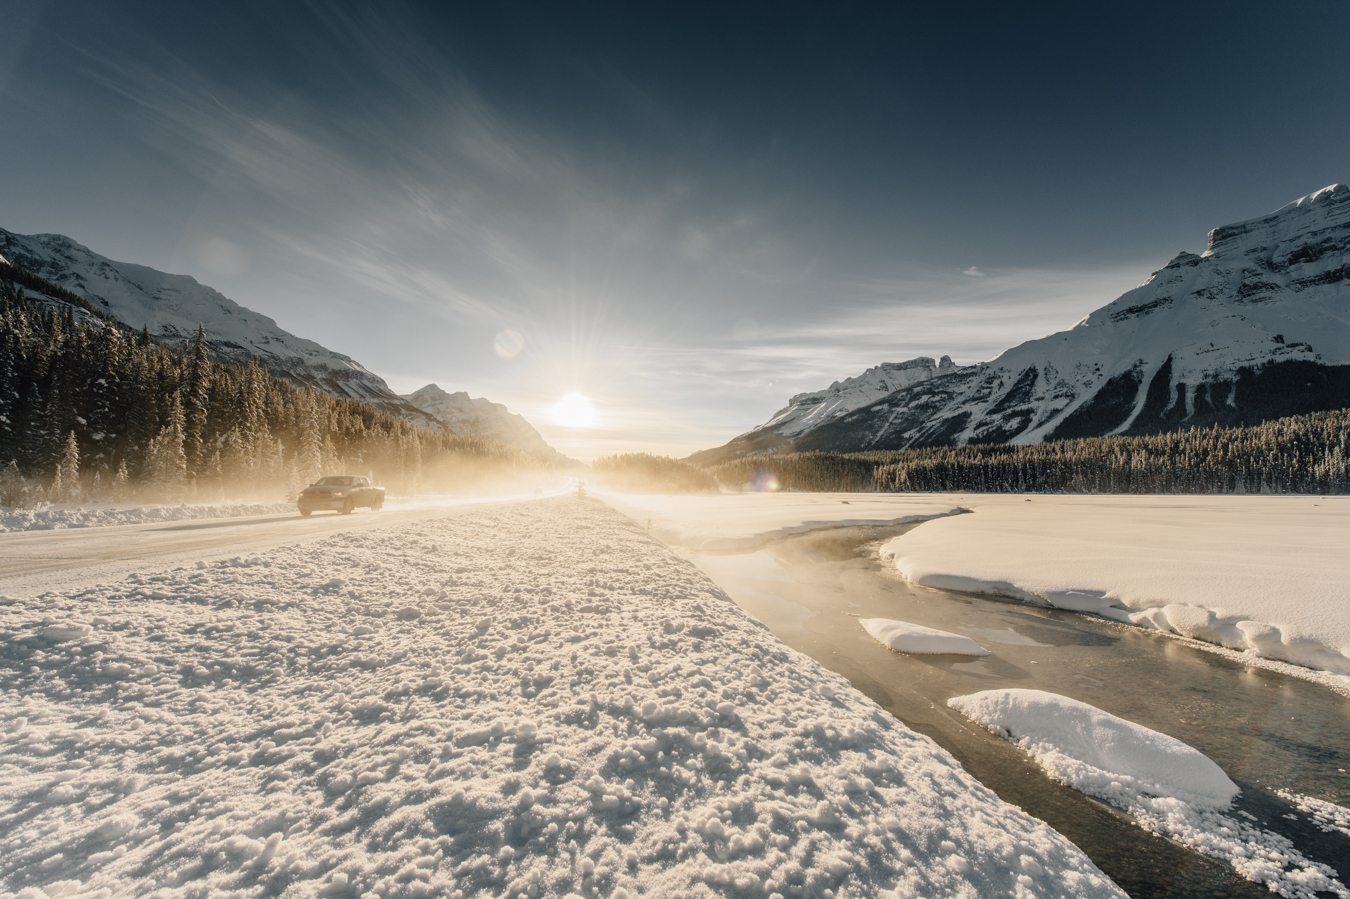 icefields-parkway-christian-frumolt-fotografie_web_small-137